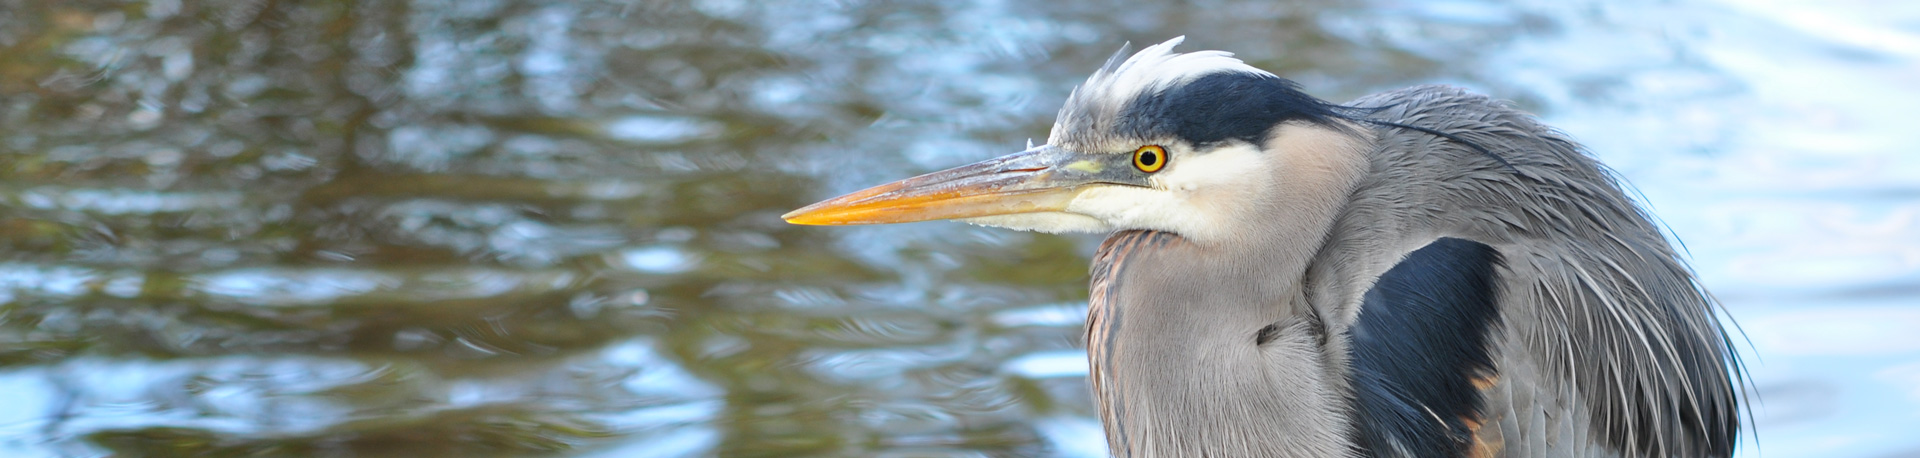 Side profile of a heron with water in the background